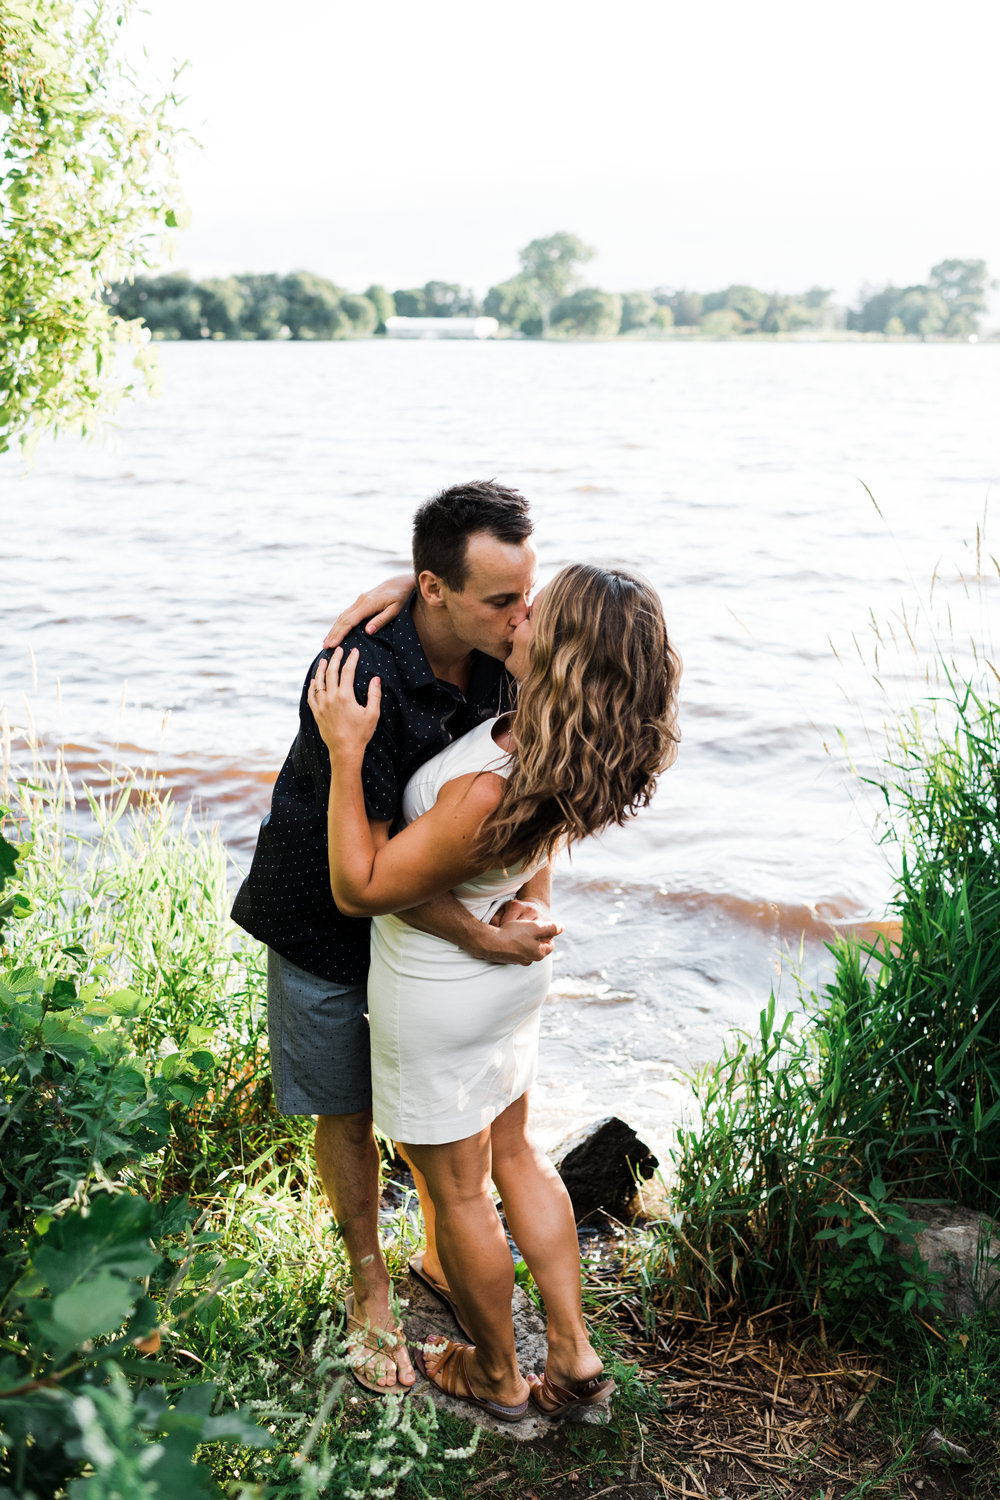 Man dips his fiancé back as he kisses her in front of the Fox River in Wisconsin.